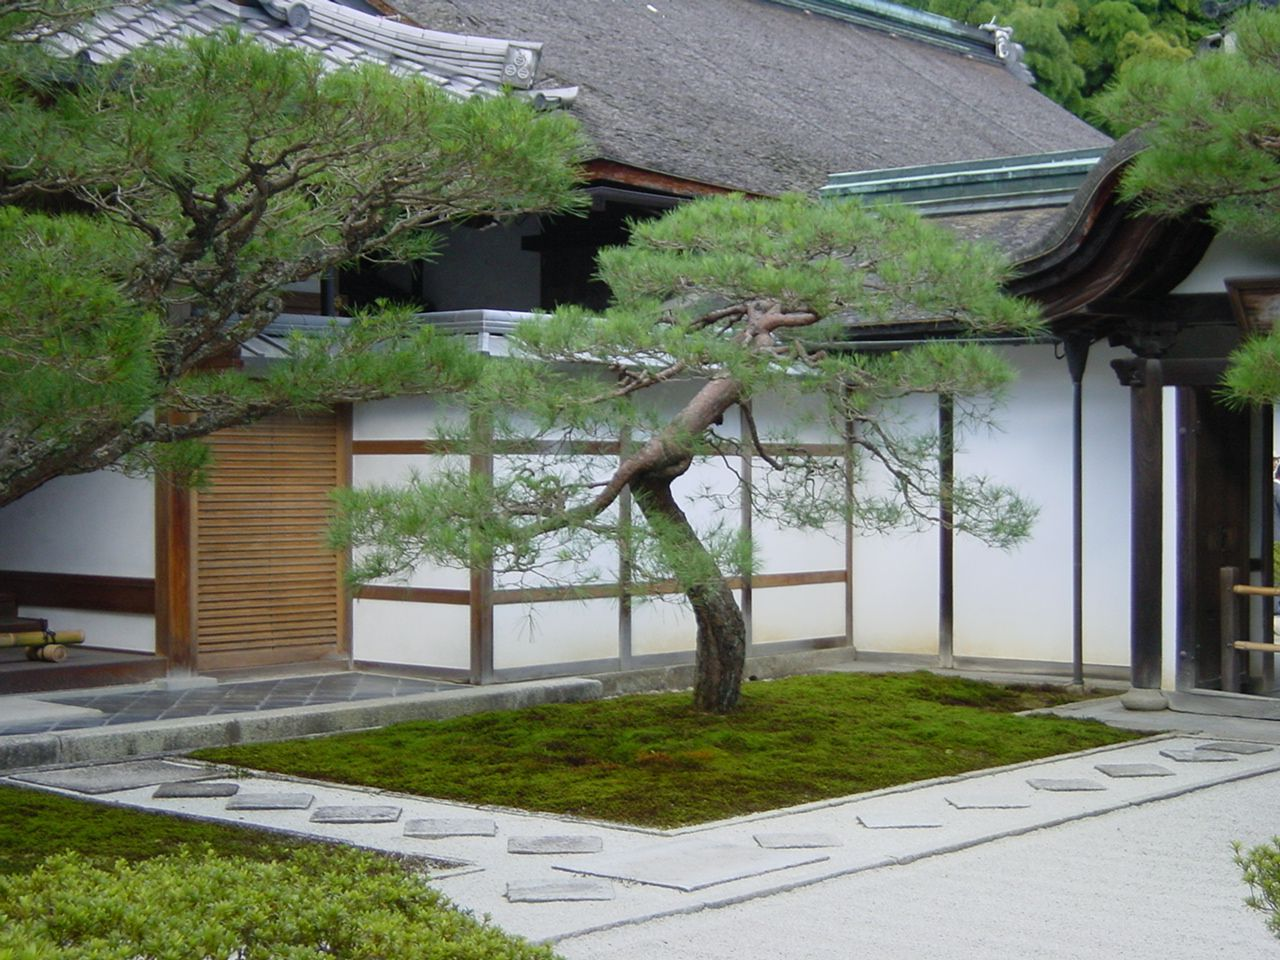 Bespoke small japanese garden designs picture 355 for Japanese garden small yard